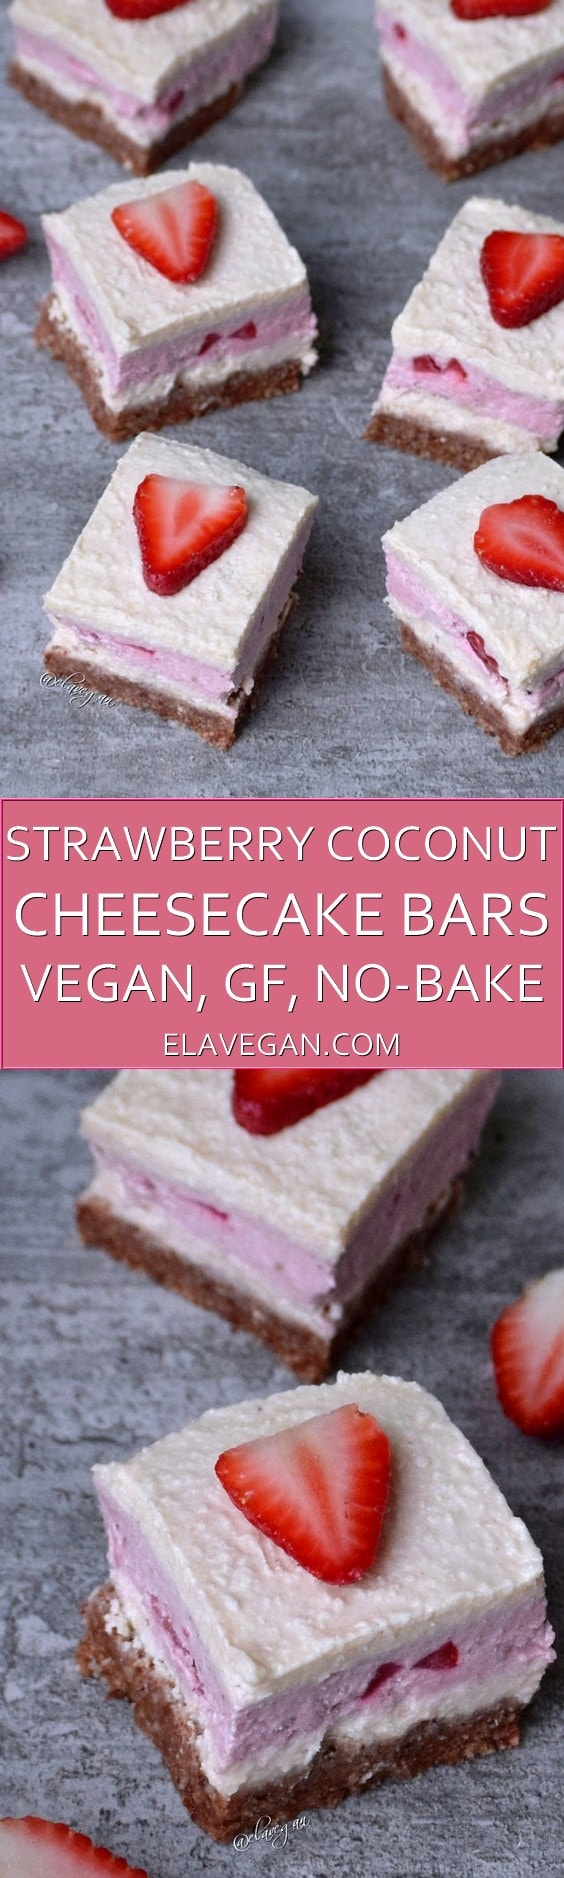 Strawberry coconut cheesecake bars pinterest